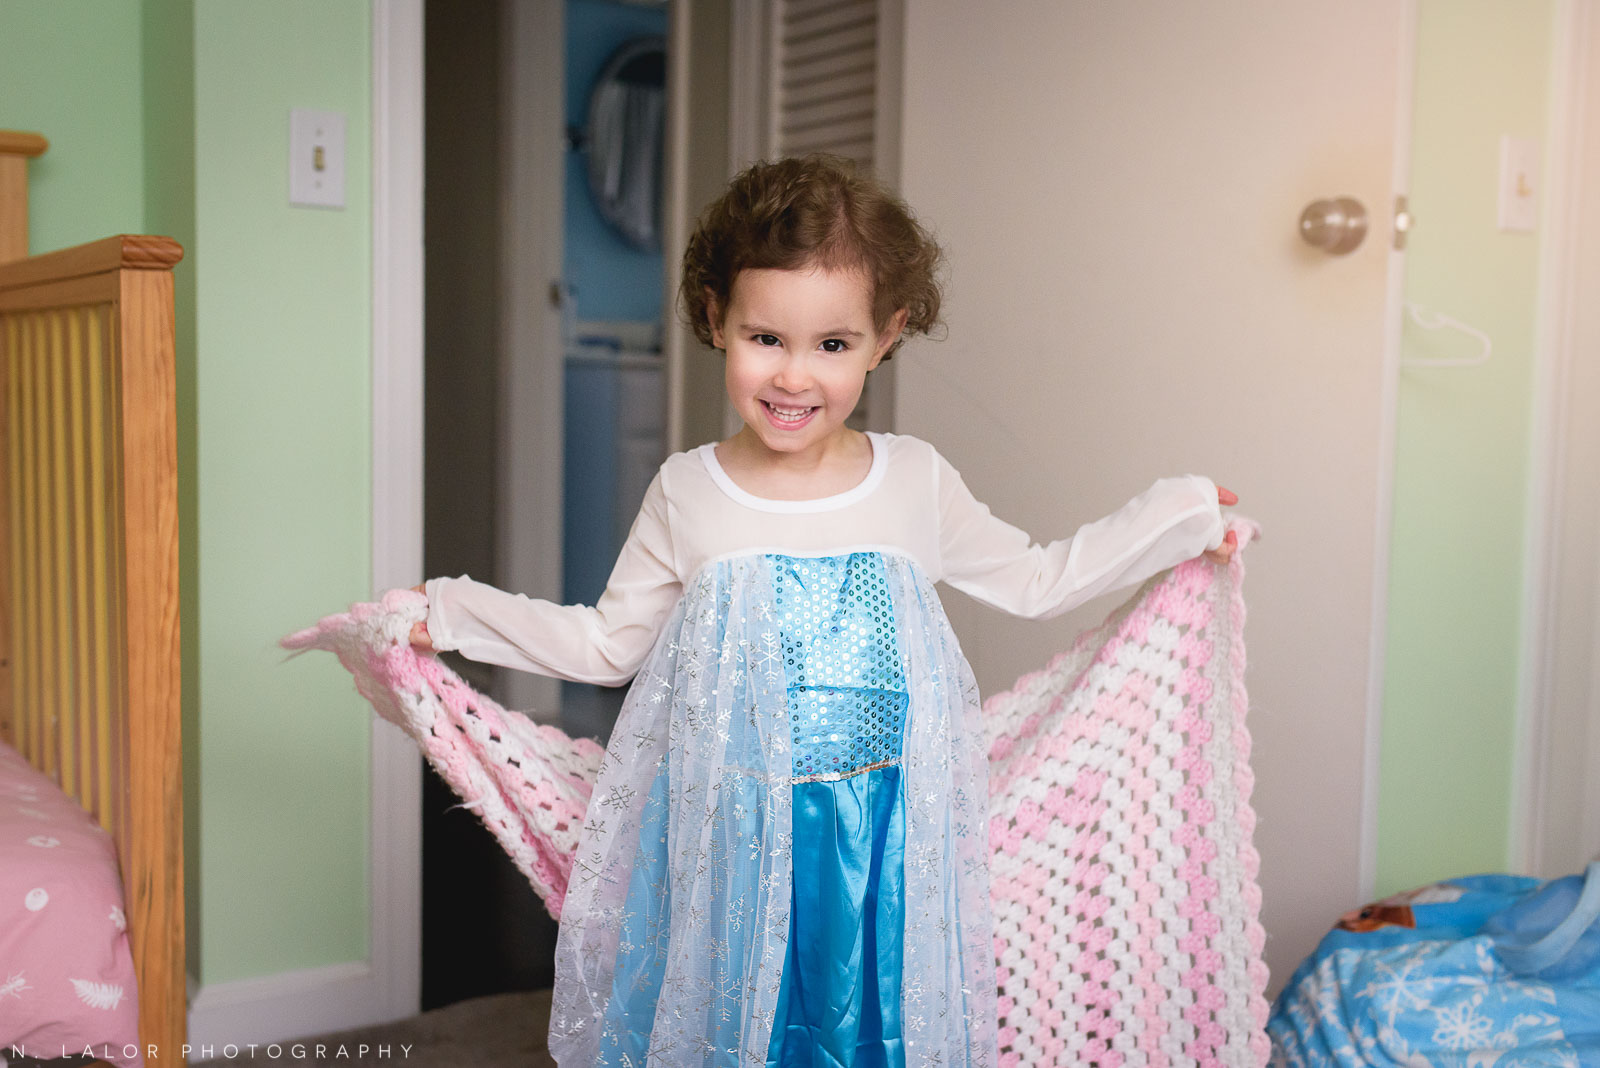 Dressing up as Elsa. A mini photo session in Fairfield County, Connecticut by N. Lalor Photography.